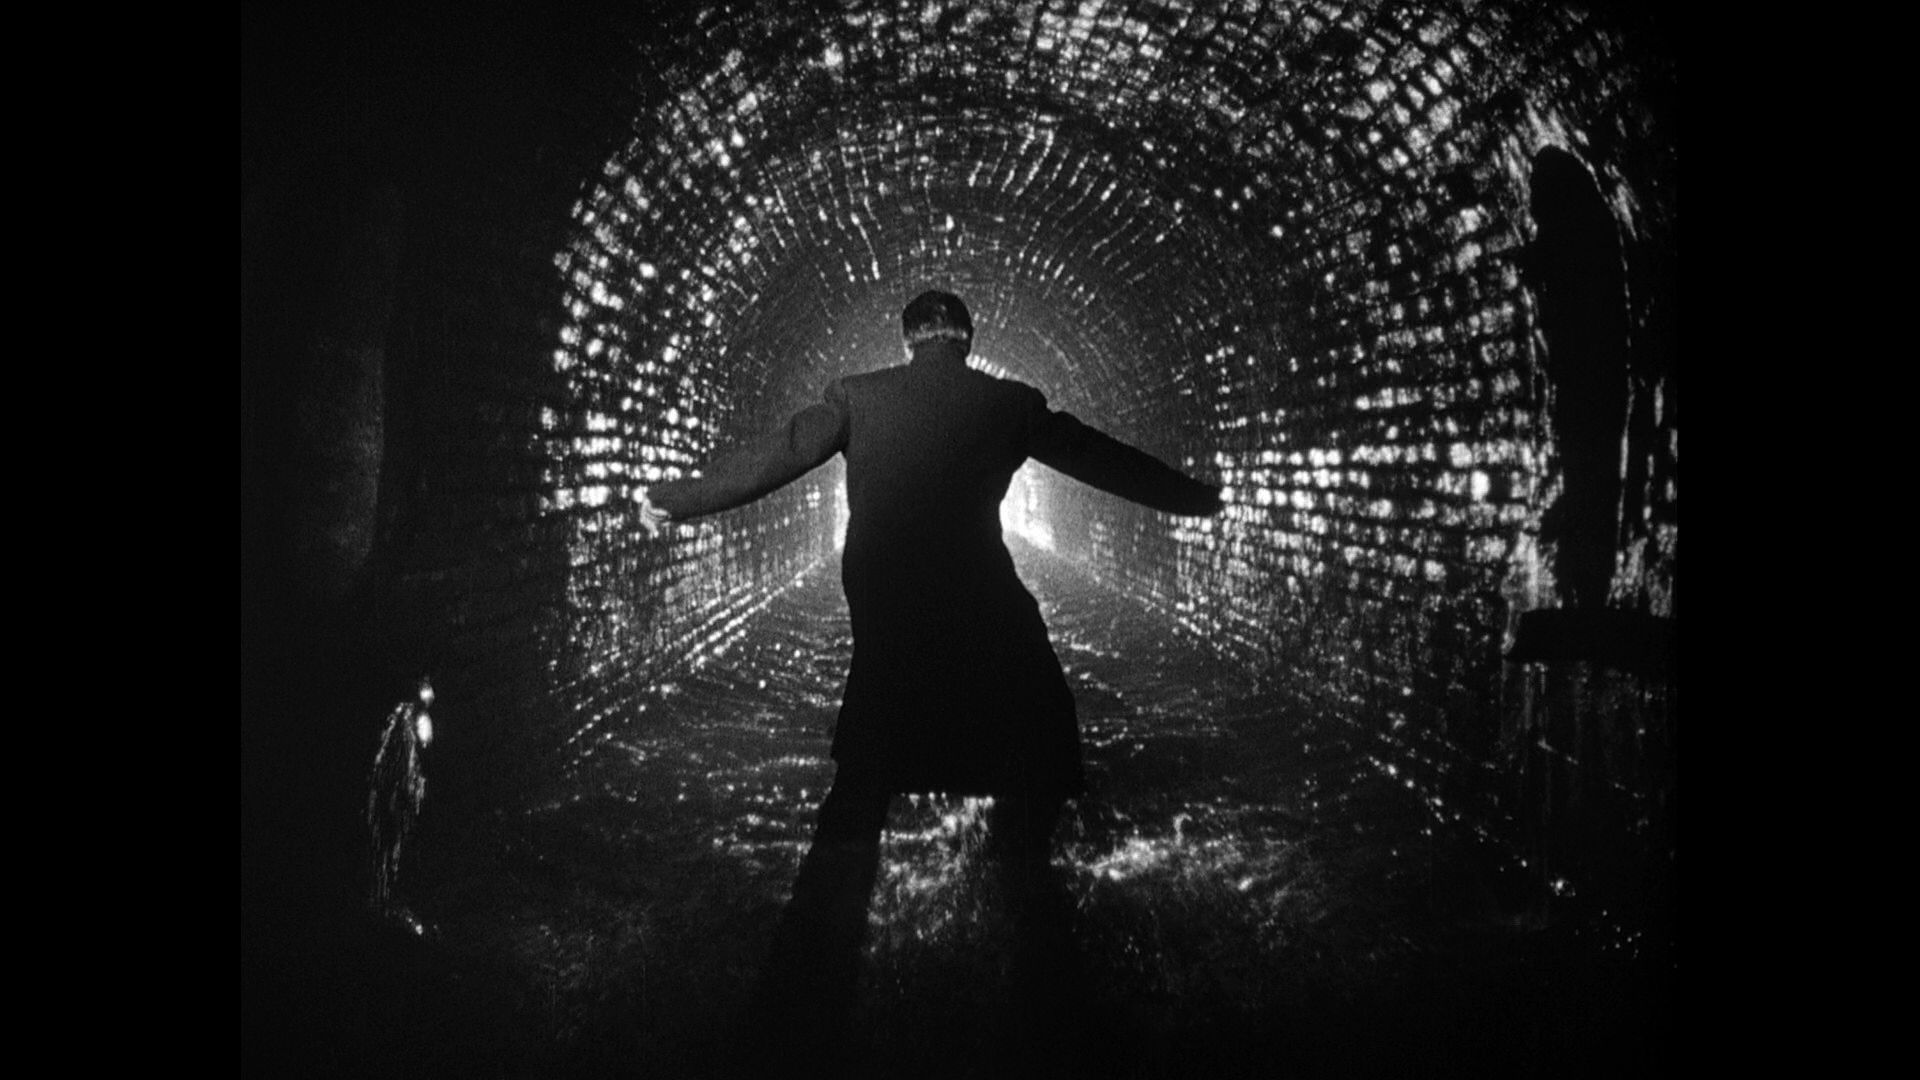 an analysis of the movie the third man Watch online full movie the third man (1949) for free pulp novelist holly martins travels to shadowy, postwar vienna, only to find himself investigating the stream movies.